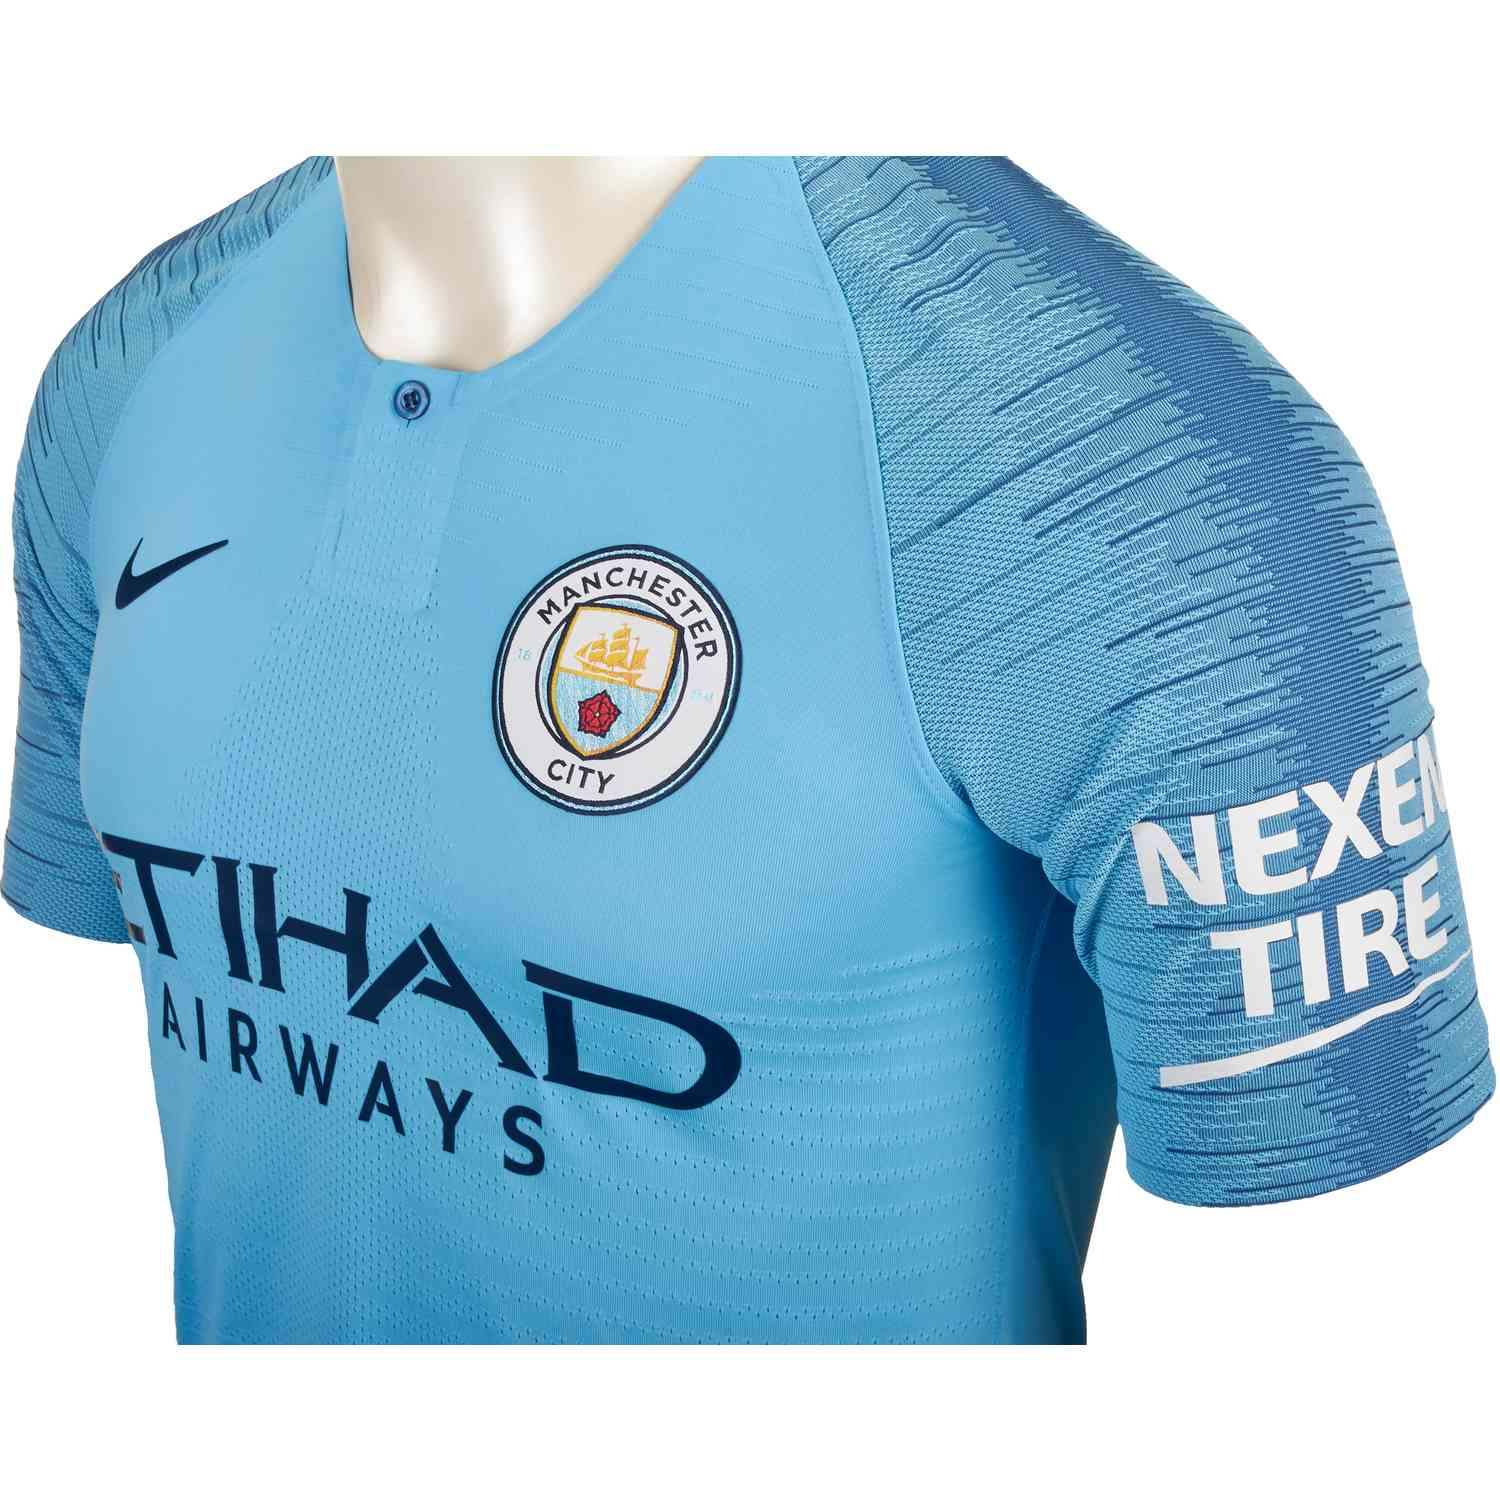 brand new c3252 aa859 2018/19 Nike Kevin De Bruyne Manchester City Home Jersey ...